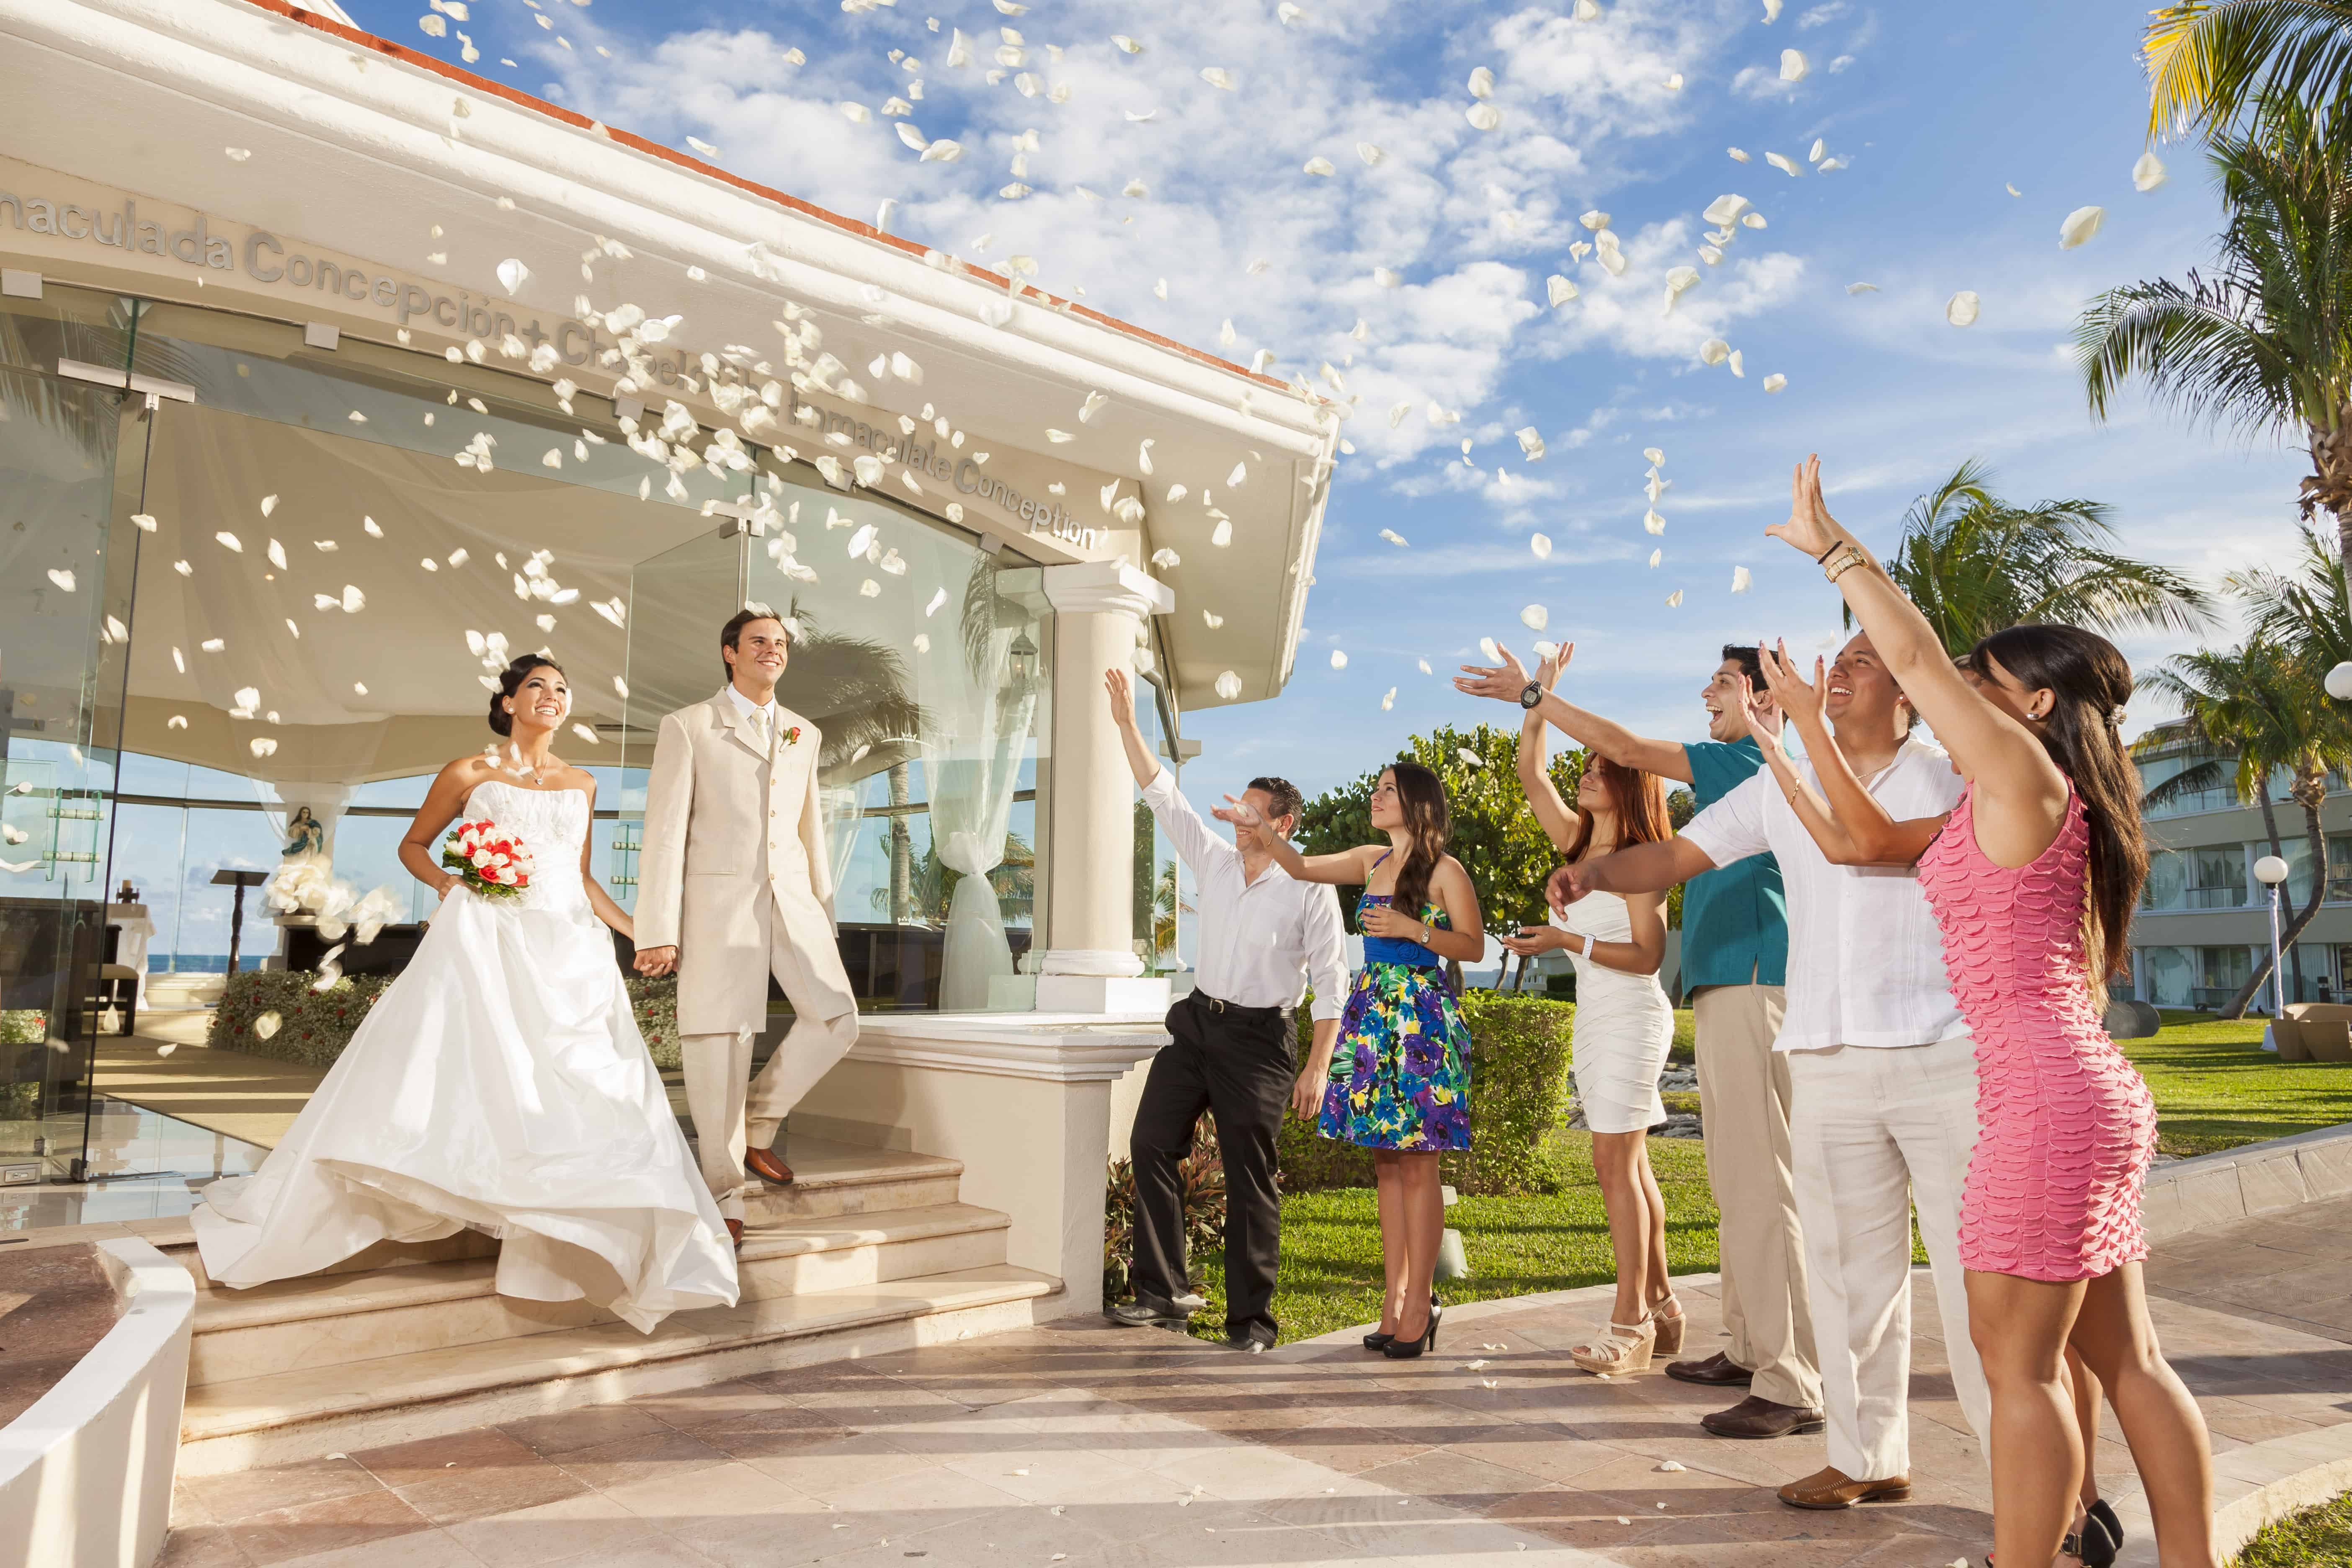 Palace resorts mexico jamaica create the moment travel for Mexico wedding packages